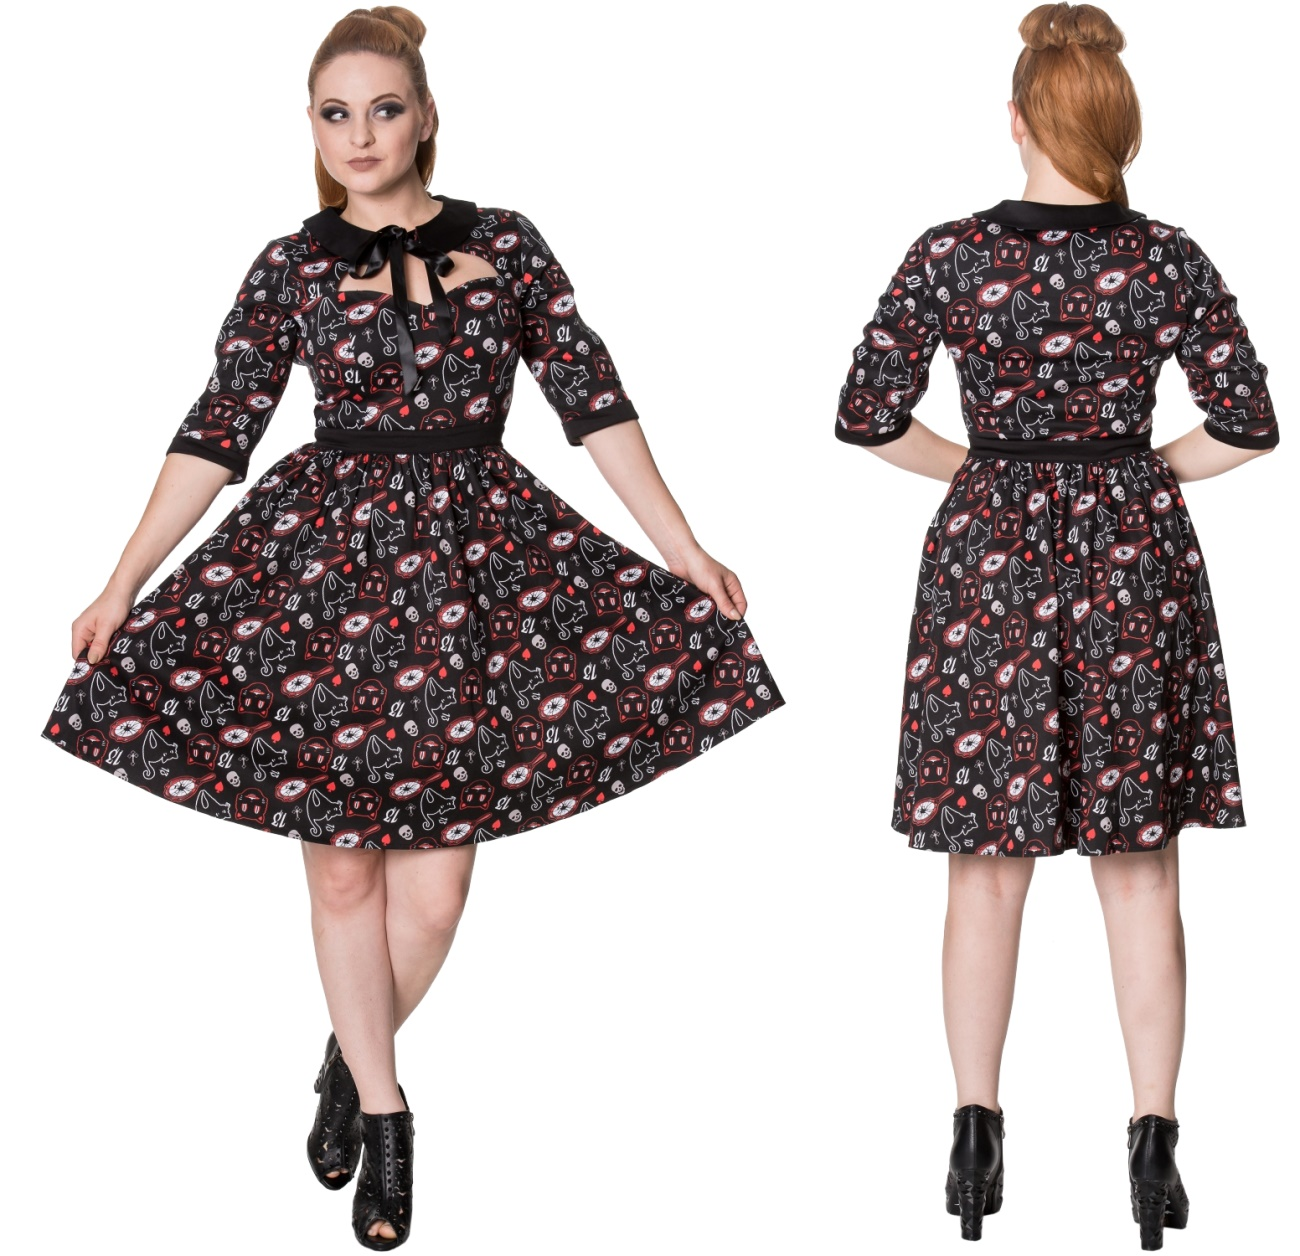 8c6c109bcb7f71 Two Faced Dress Rockabilly Kleid Banned - Banned Kleider - Gothic ...